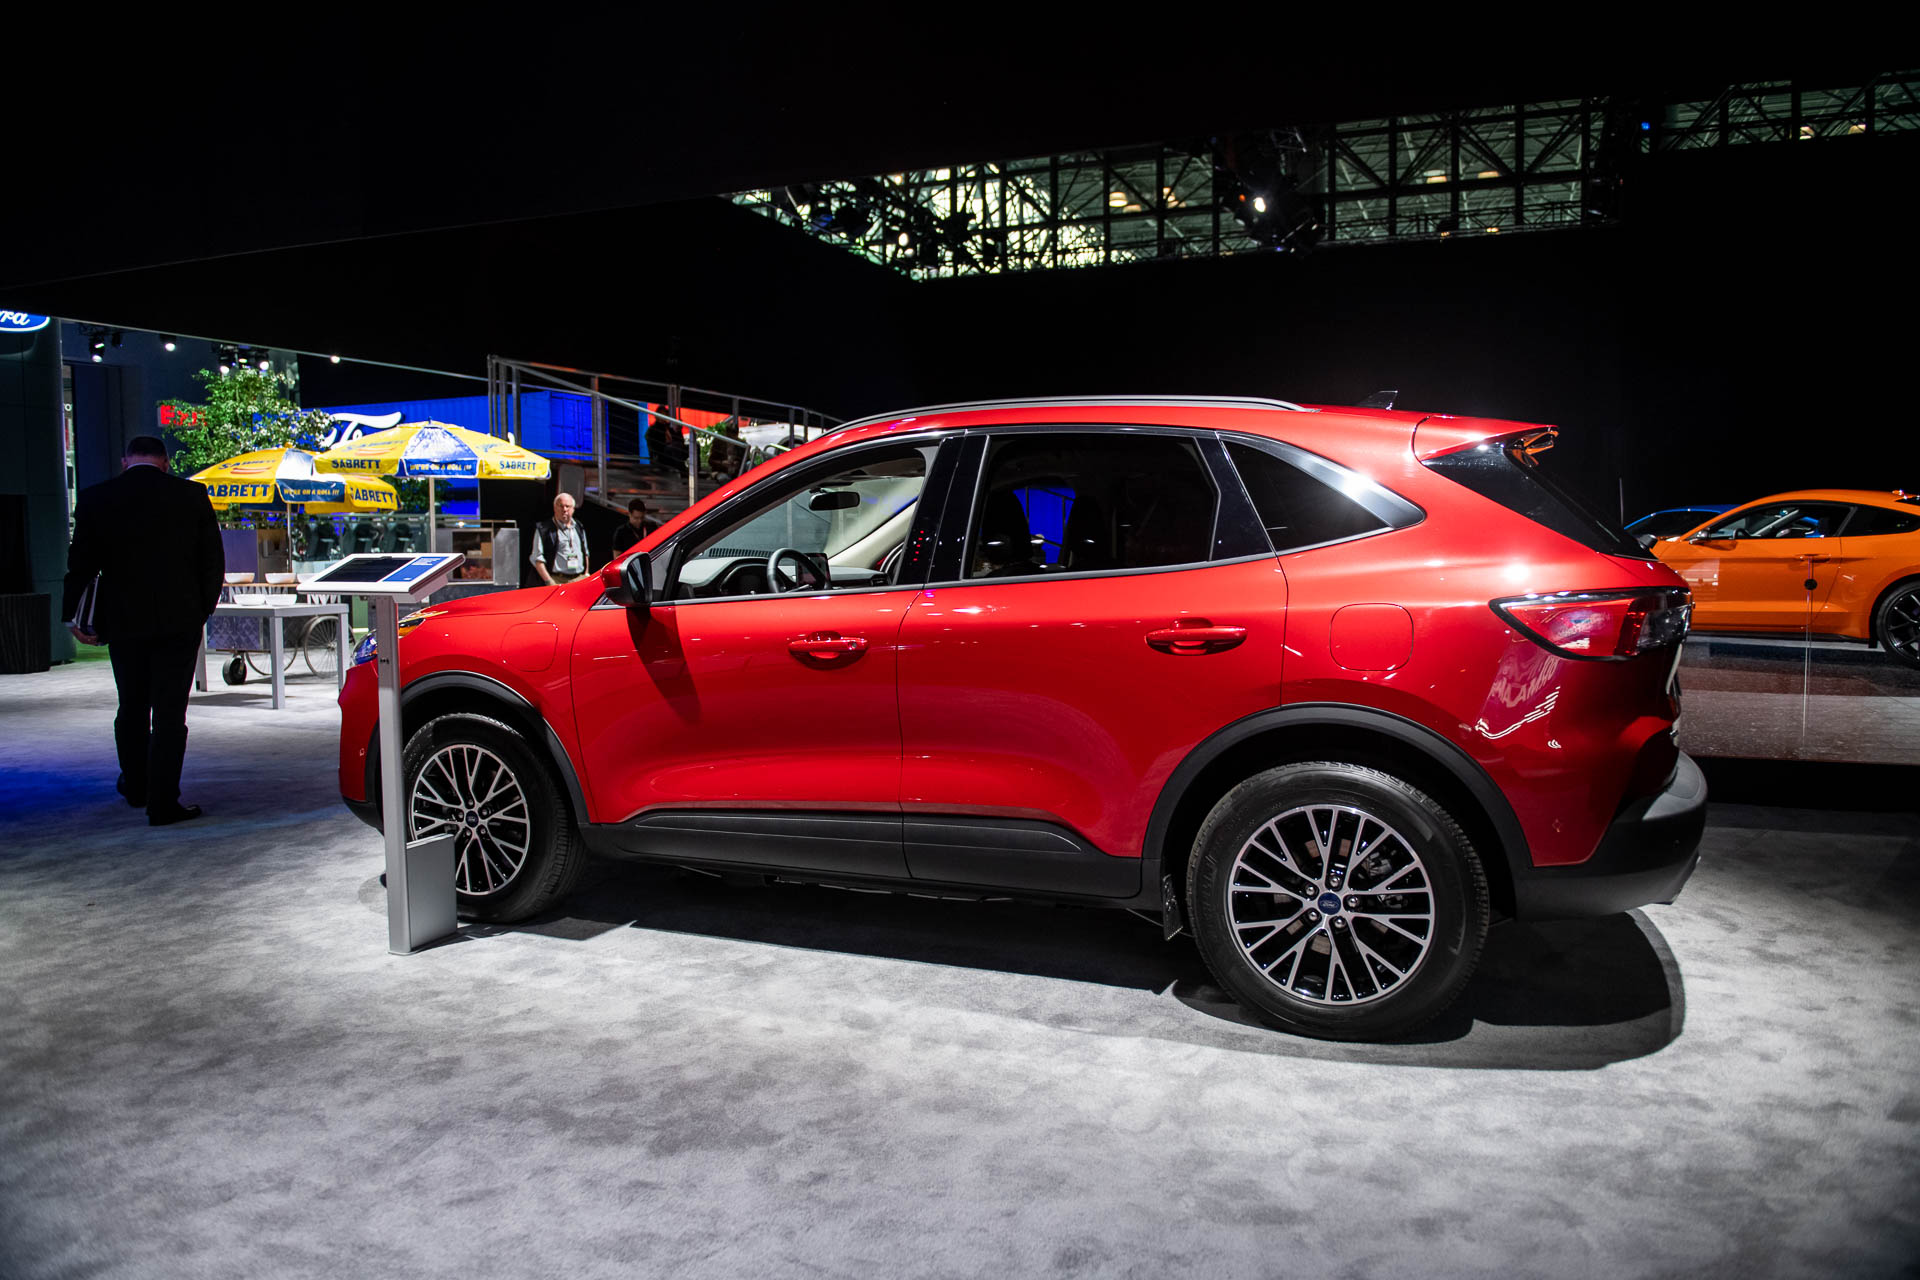 2020 Ford Escape Revealed Crossover Suv Brings Plug In Hybrid Tech